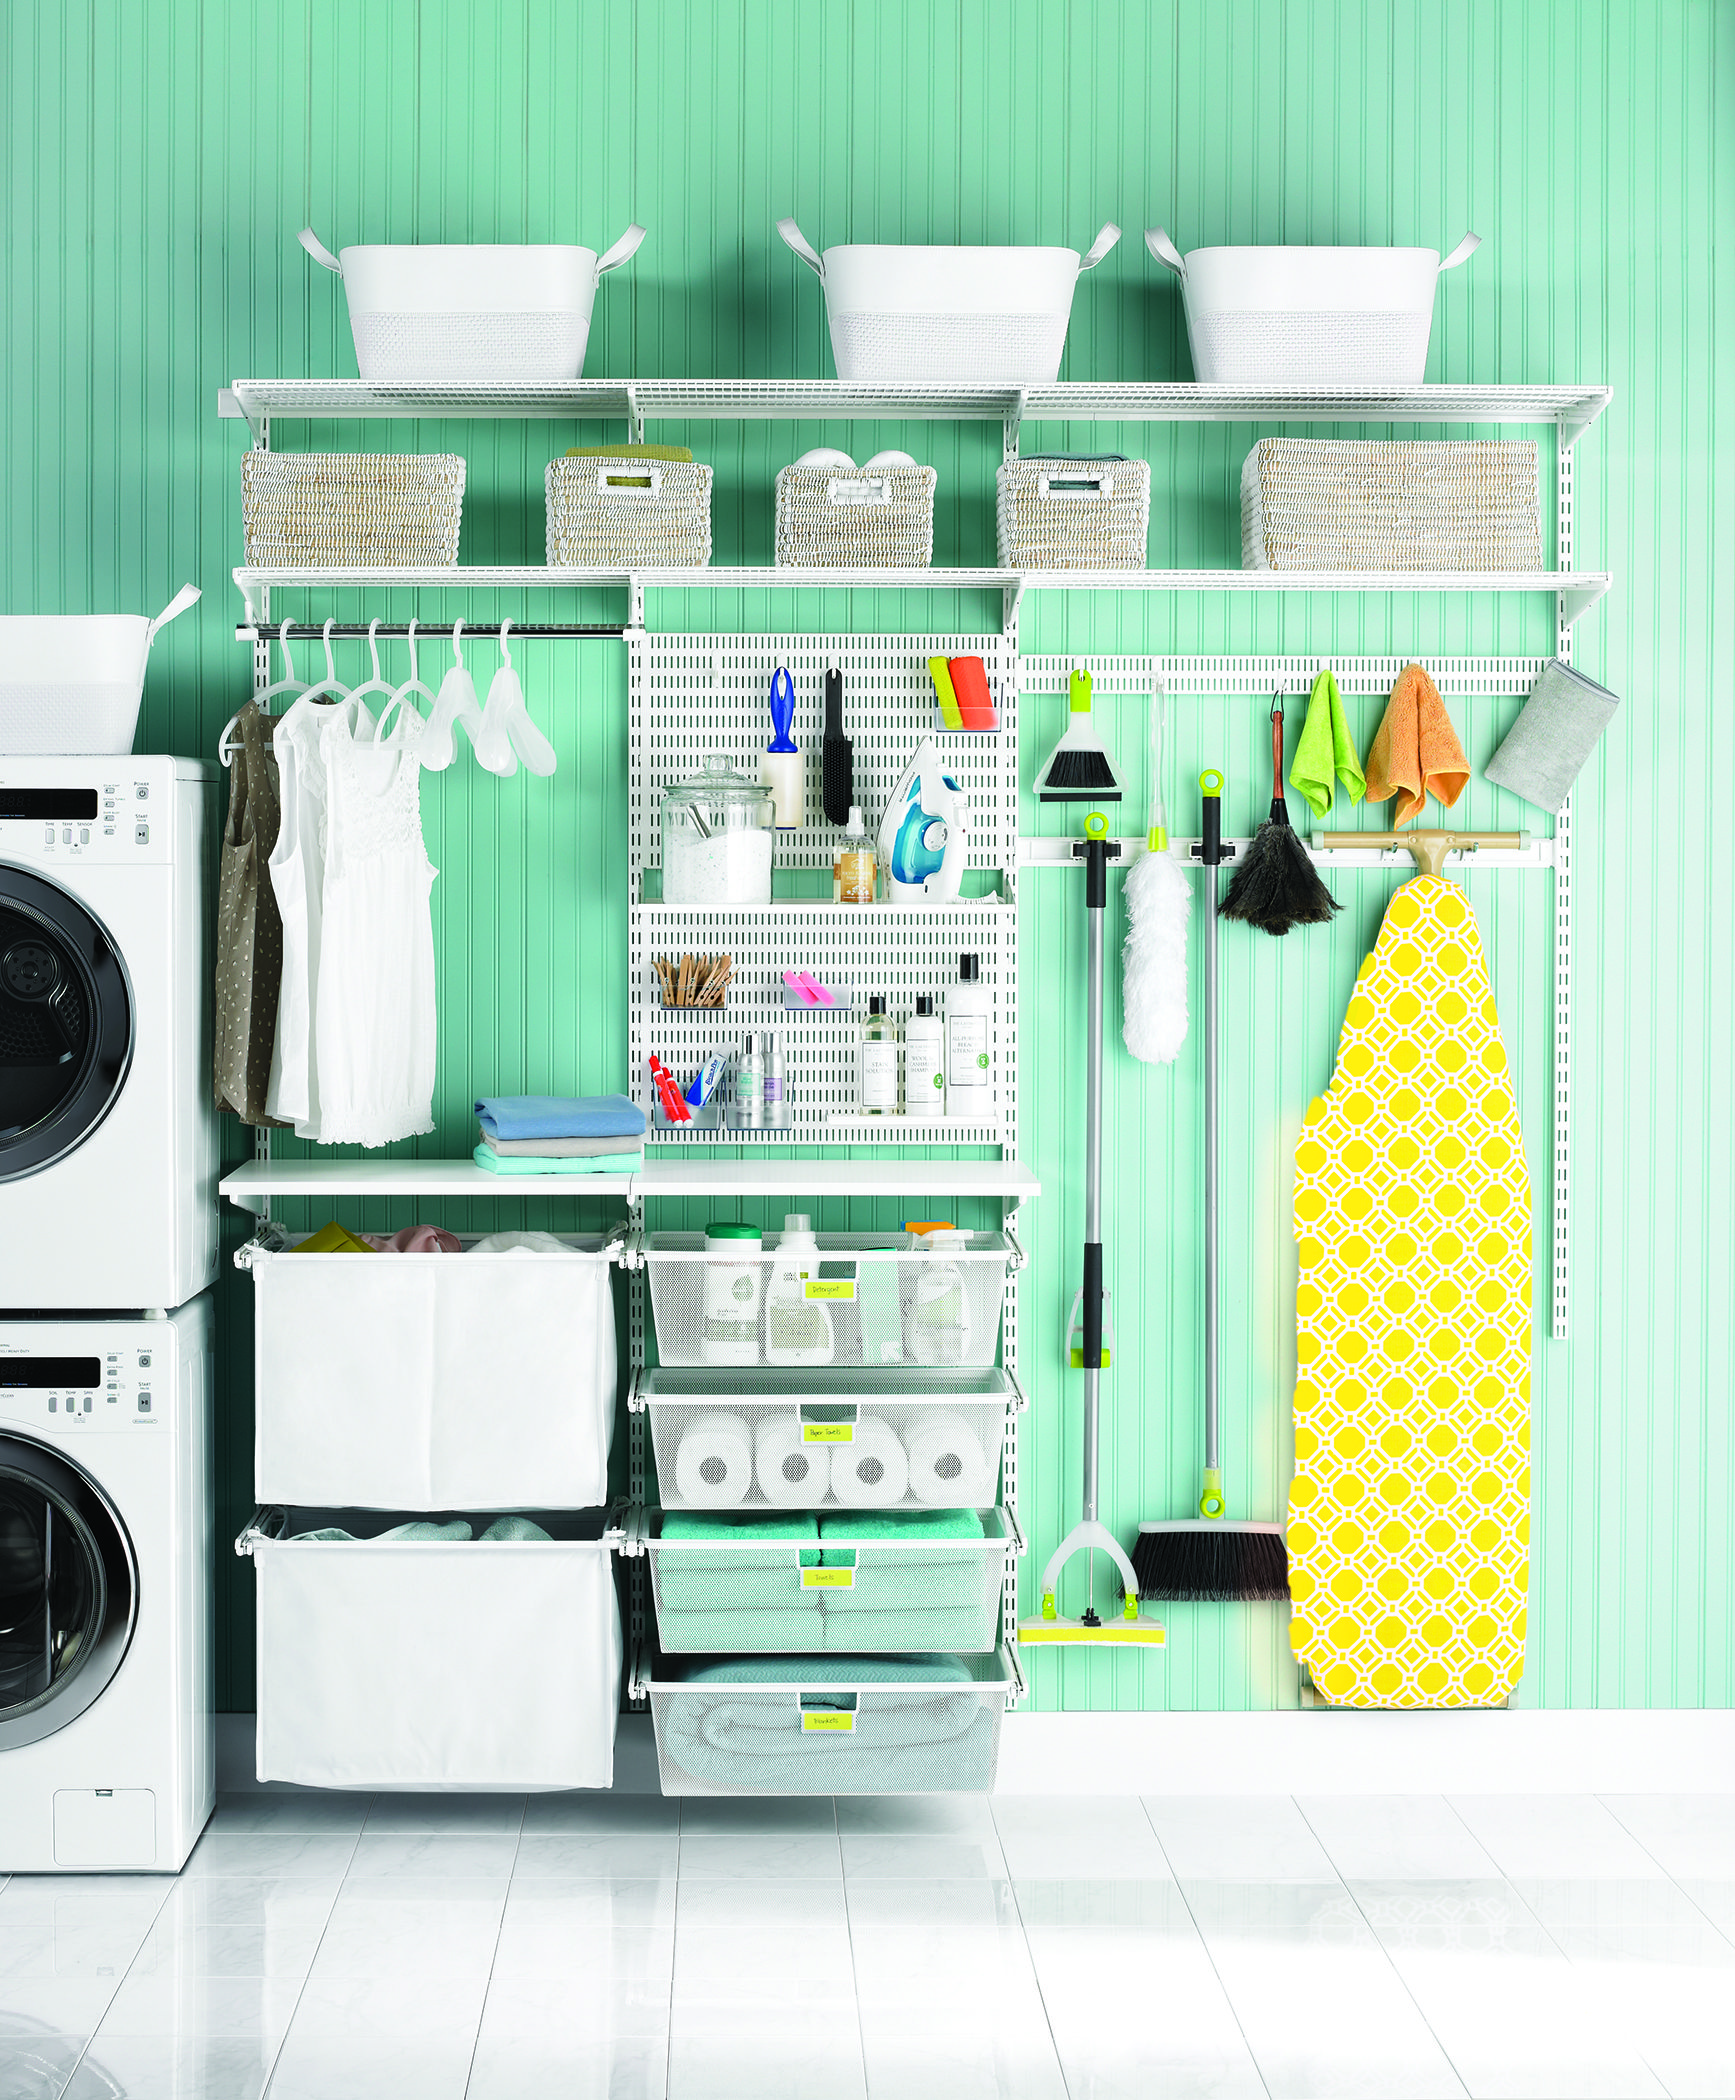 Sort Out Your Laundry Room Challenges With Elfa Laundry Room Design Laundry Room Small Laundry Rooms